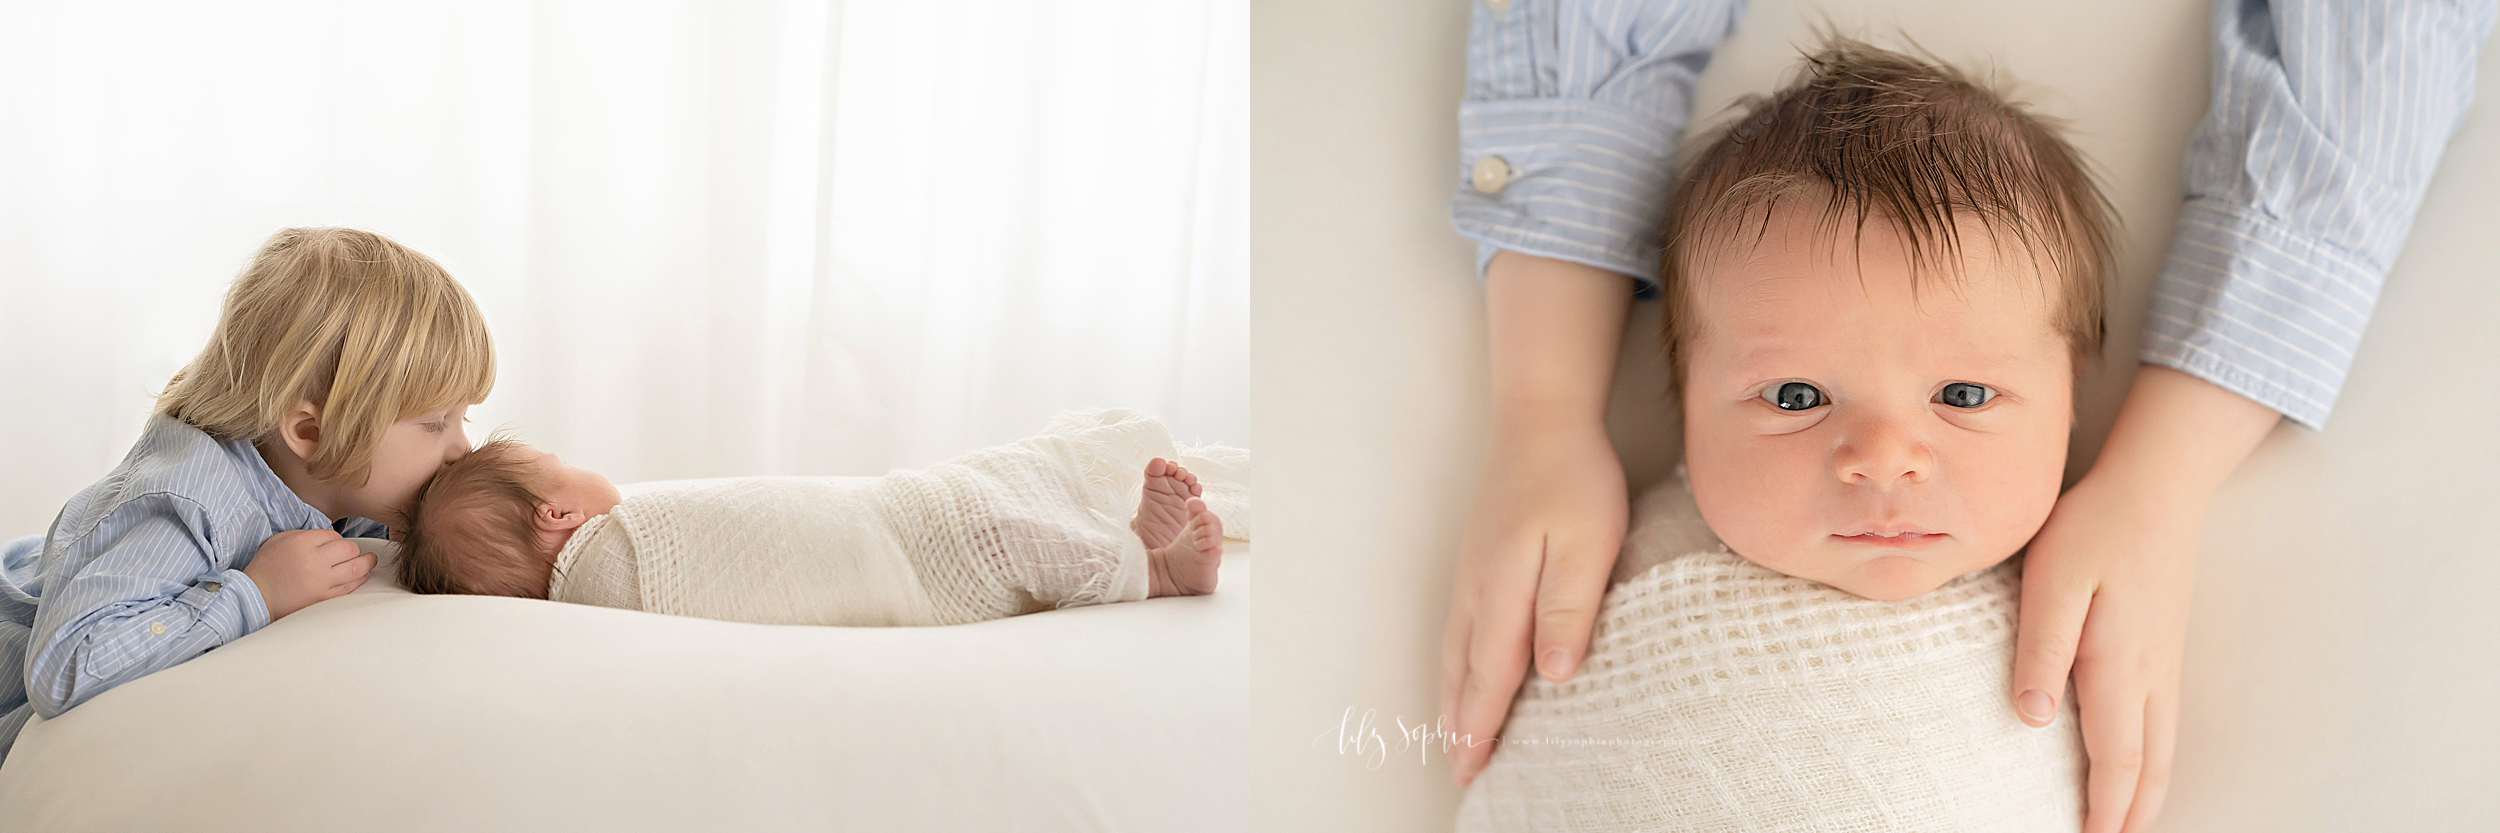 atlanta-midtown-brookhaven-ashford-dunwoody-virginia-highlands-roswell-decatur-lily-sophia-photography-newborn-baby-boy-big-brother-family-studio-session_0608.jpg